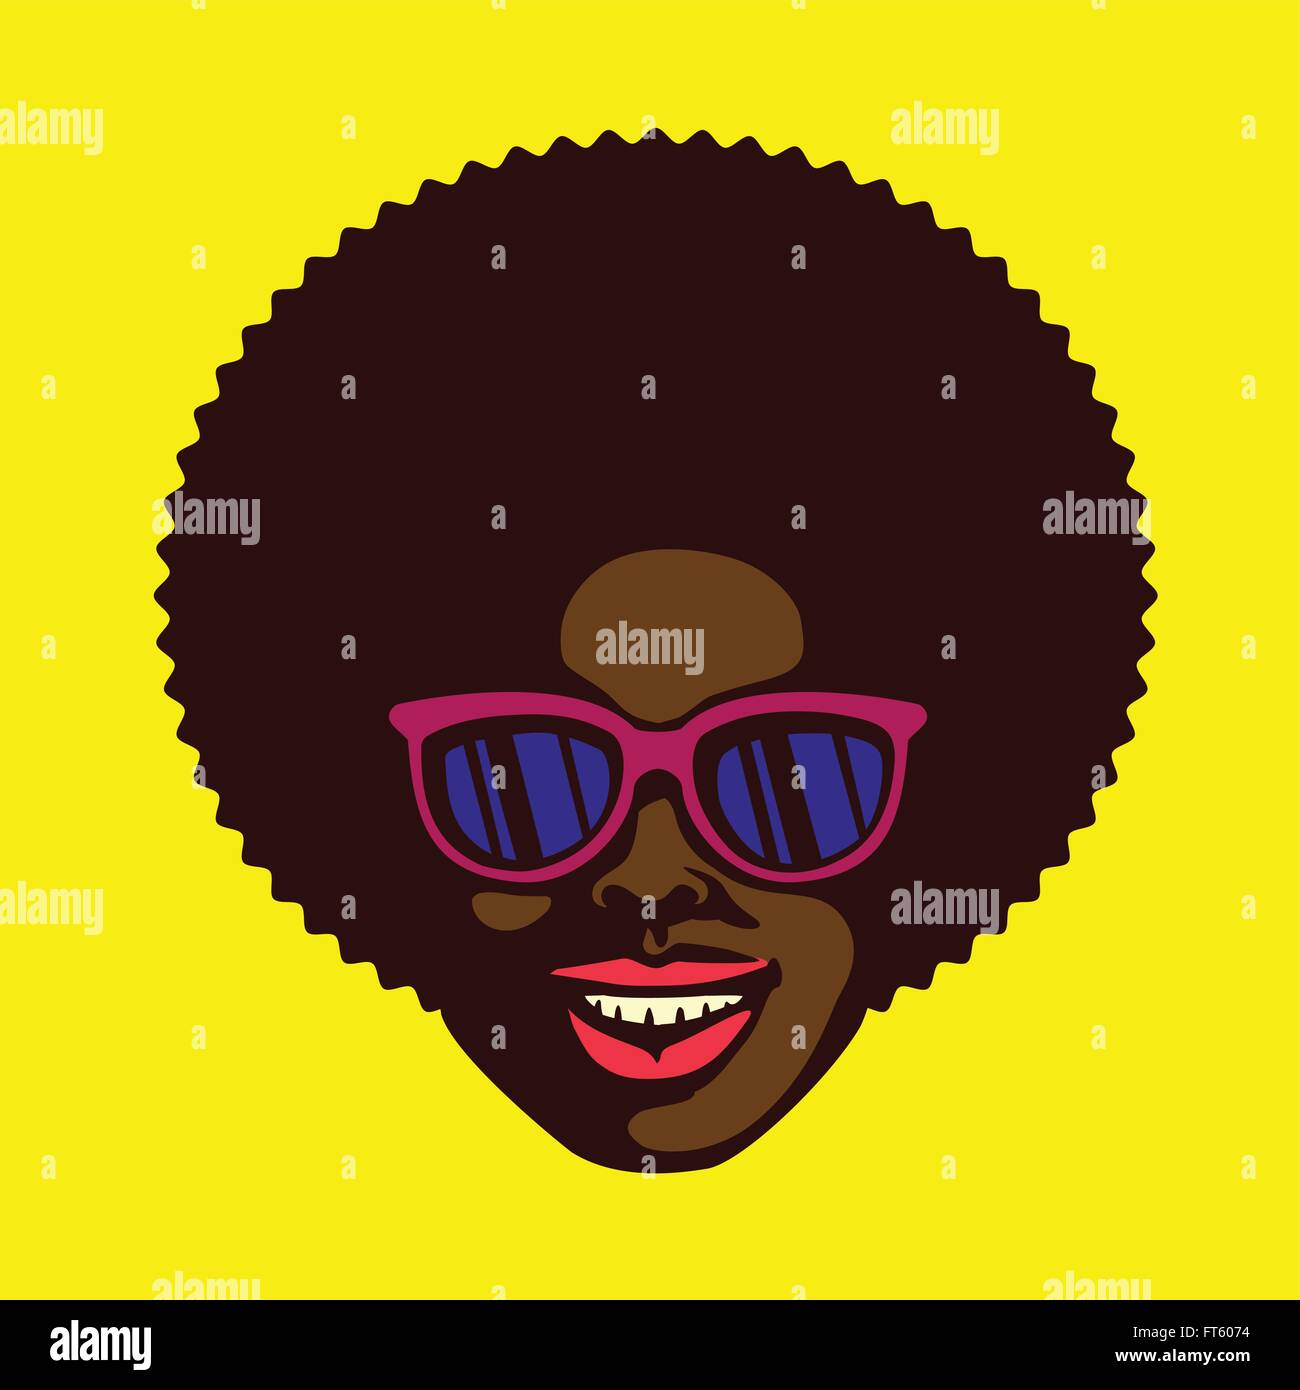 Smiling Groovy Cool Dude Face Black Man With Afro Hair